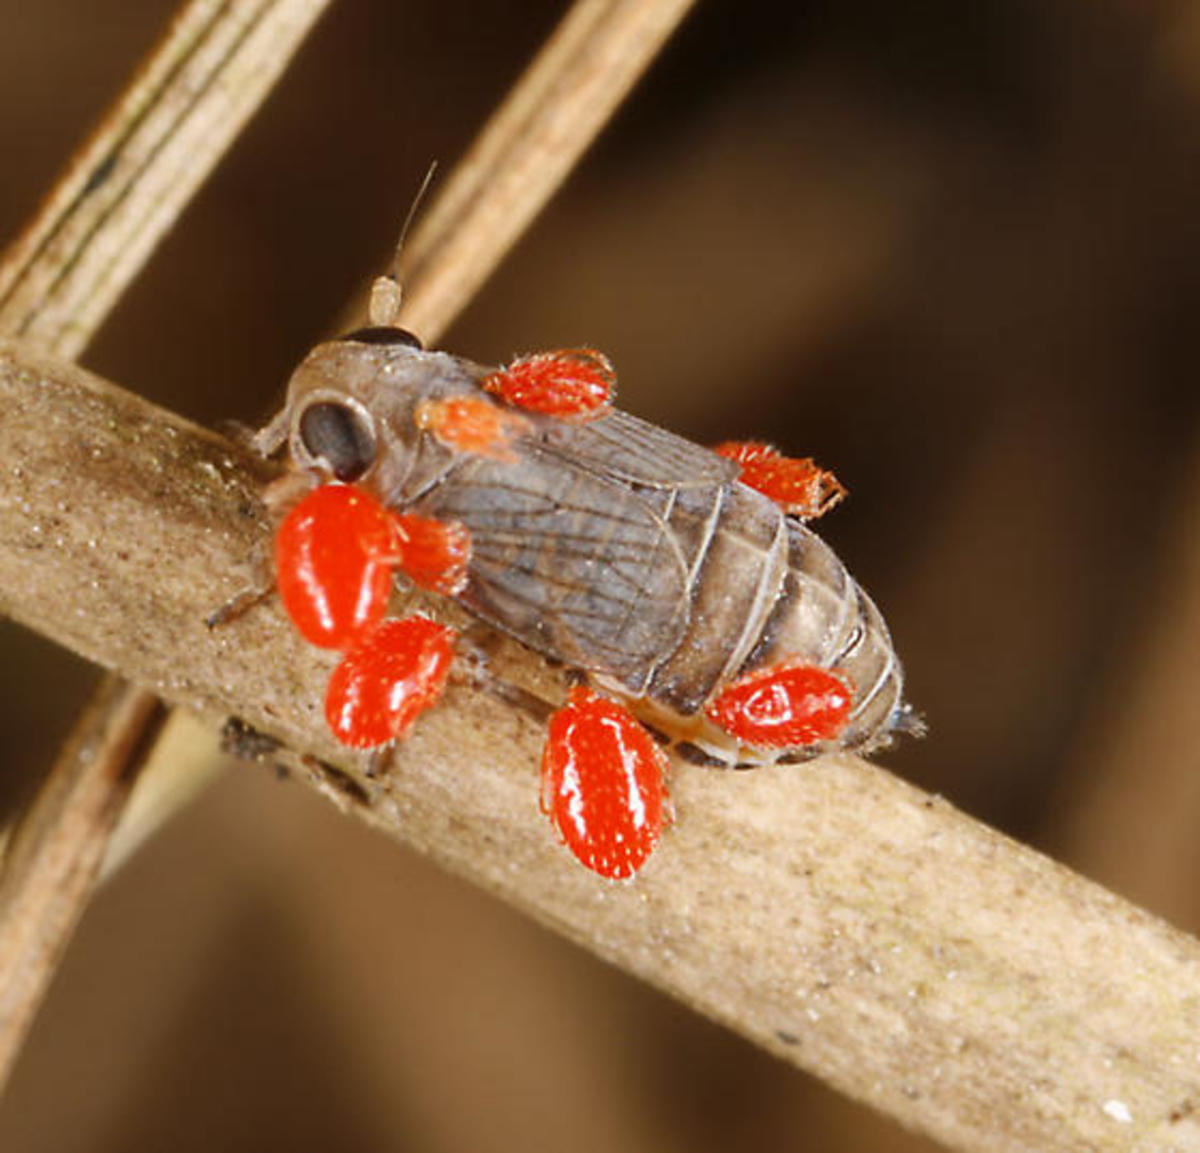 Larva of red velvet mite on host